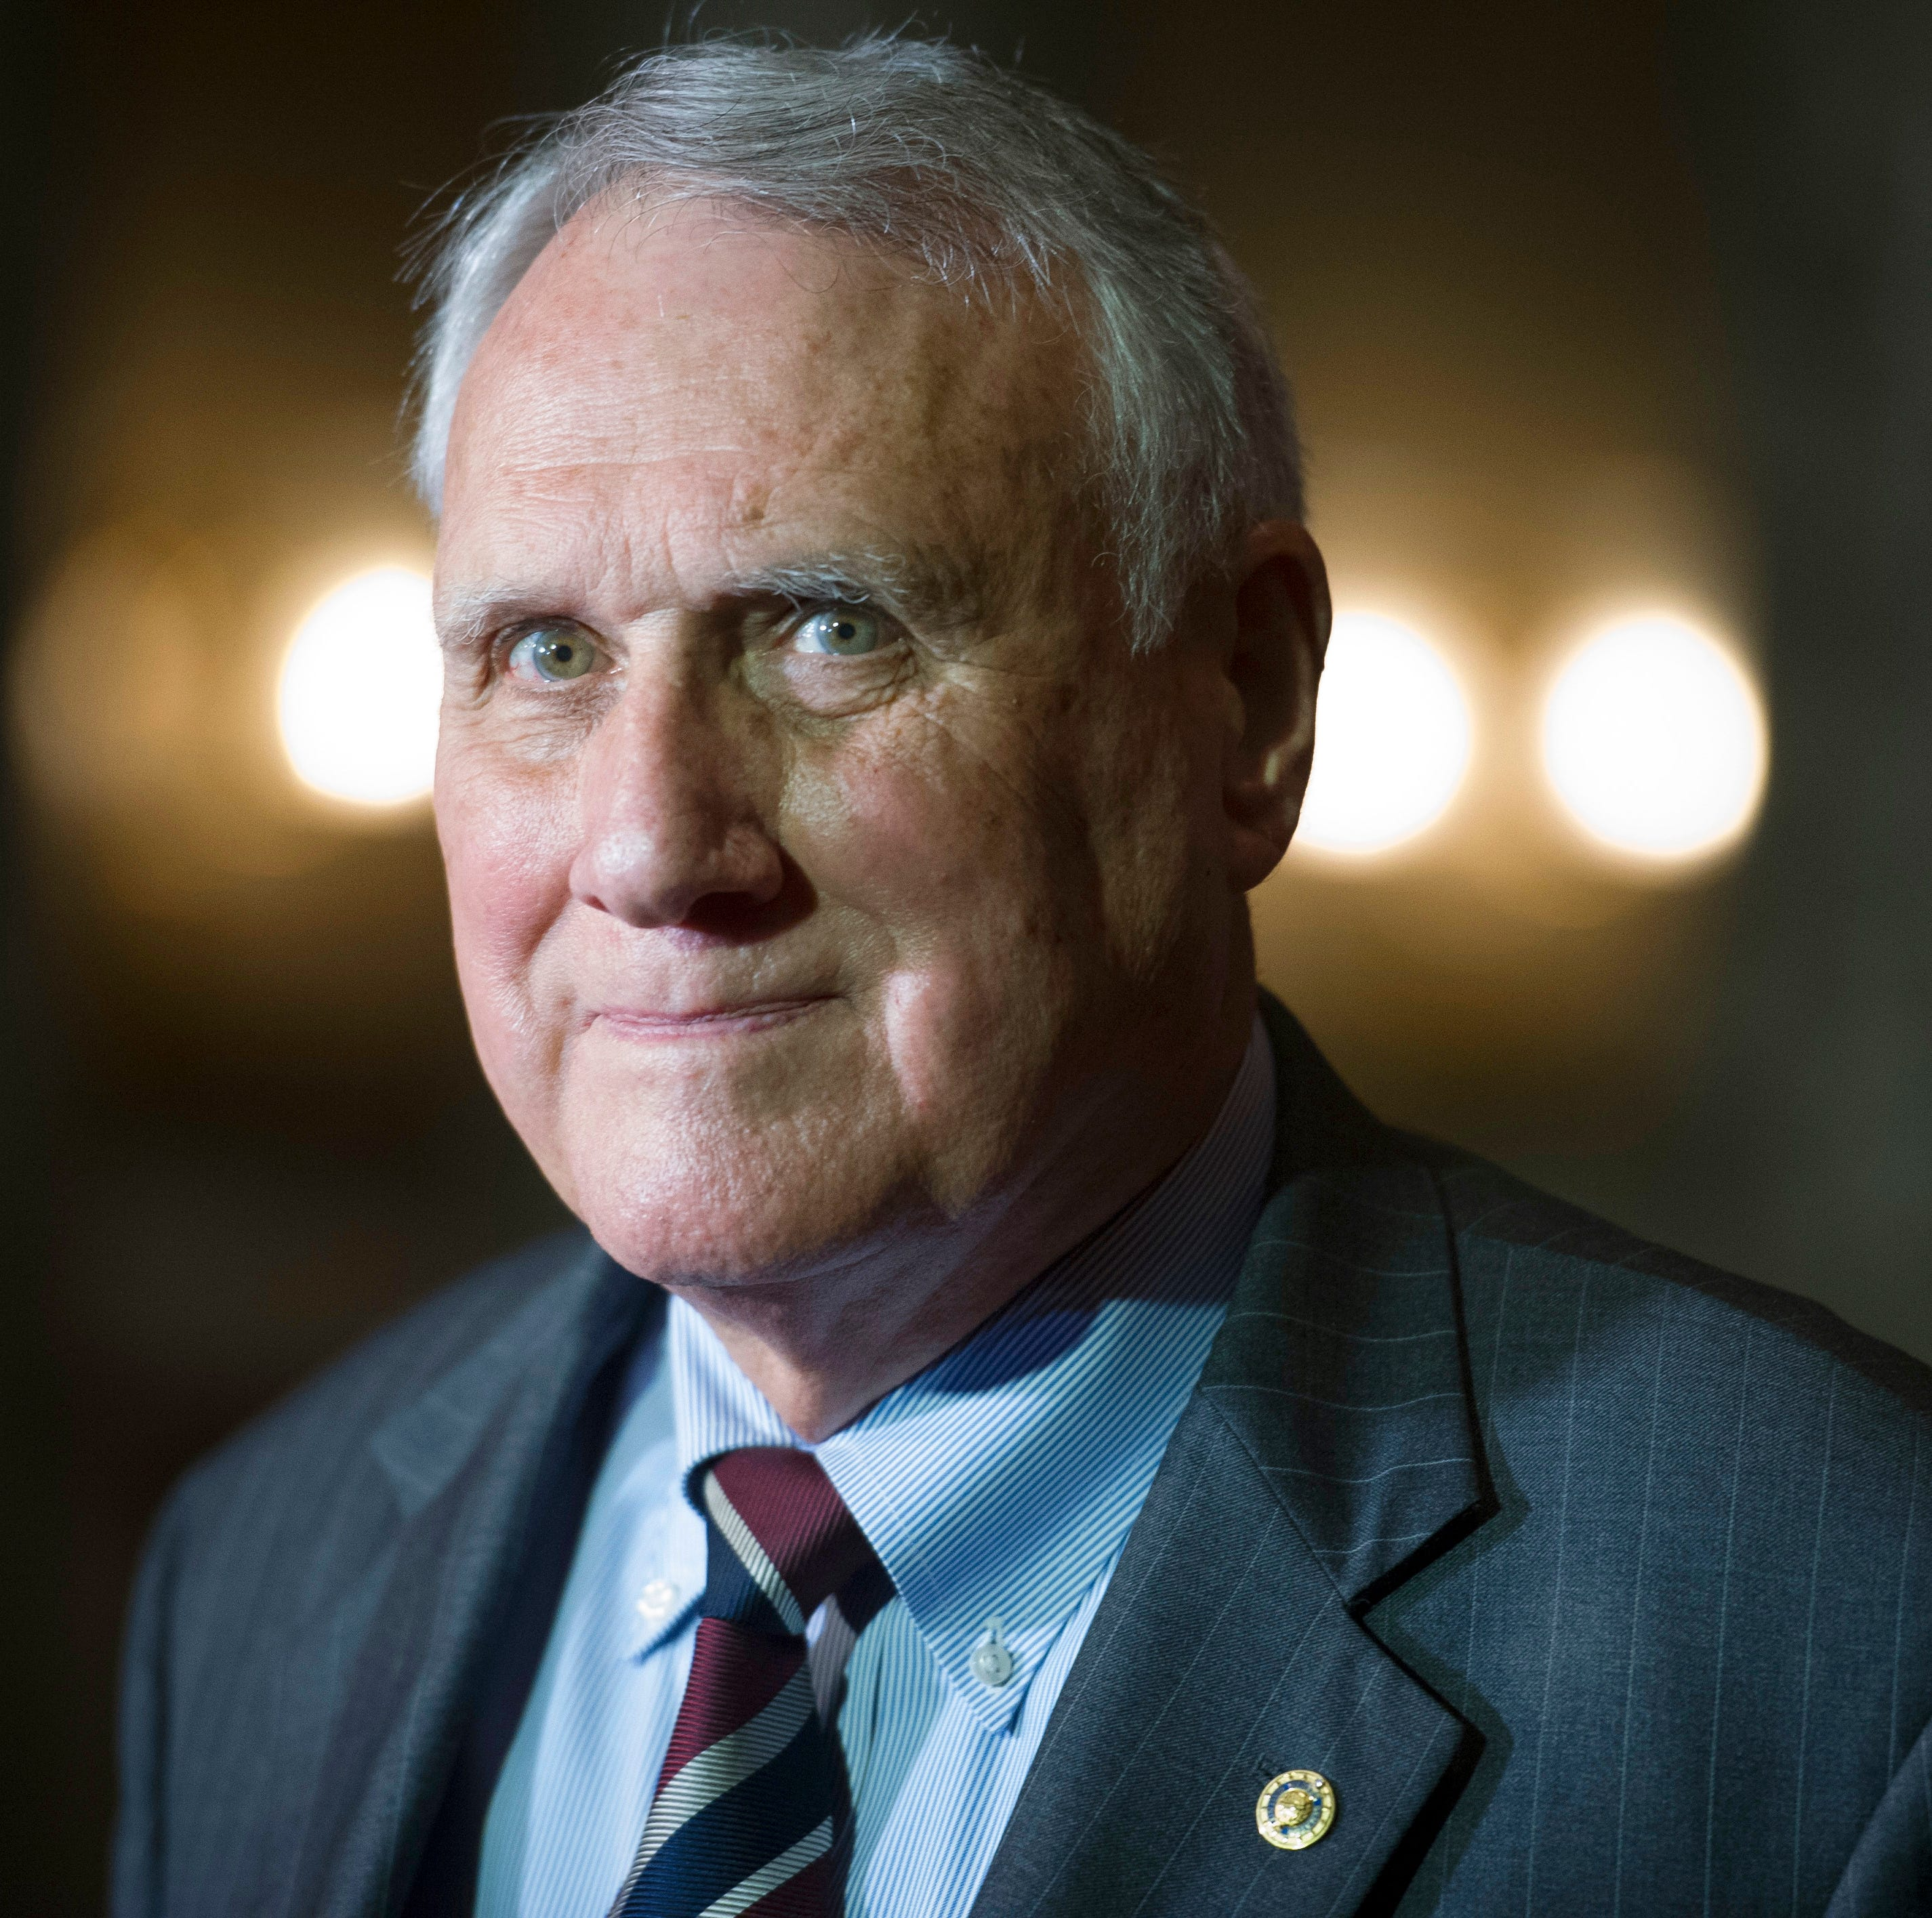 Jon Kyl will resign from the Senate on Dec. 31, setting up another appointment to John McCain's seat